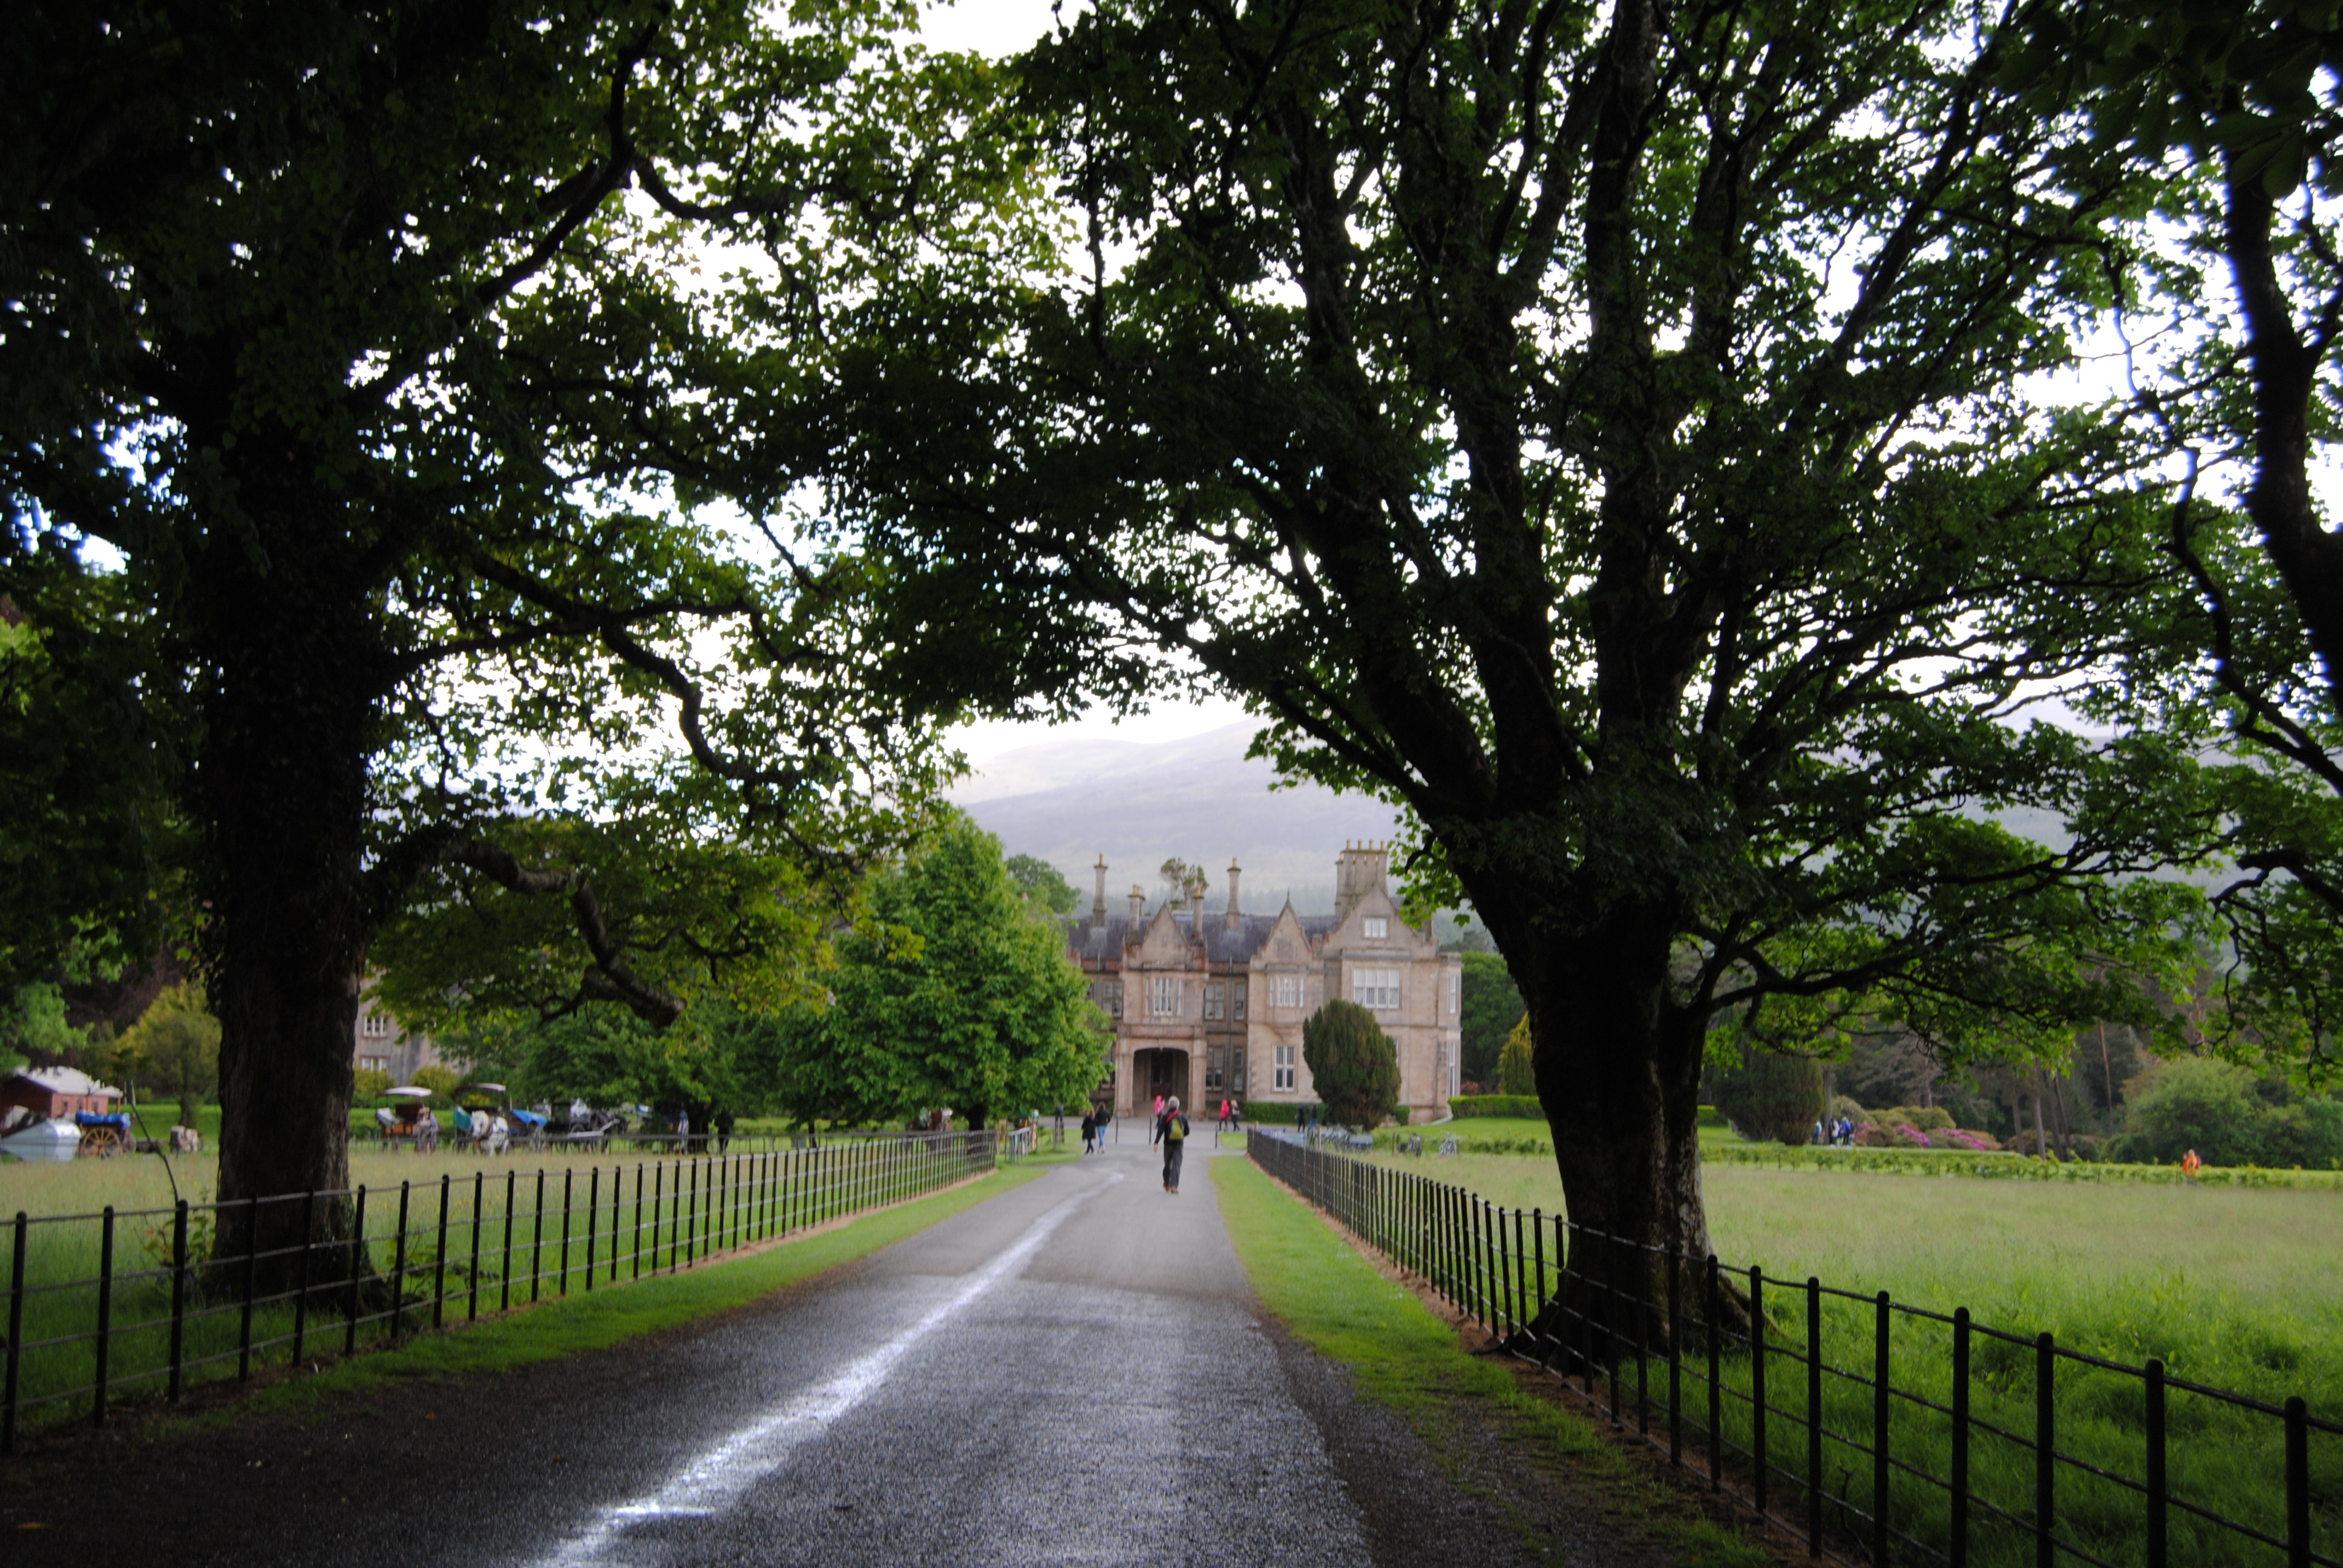 Muckross House on the National Park grounds